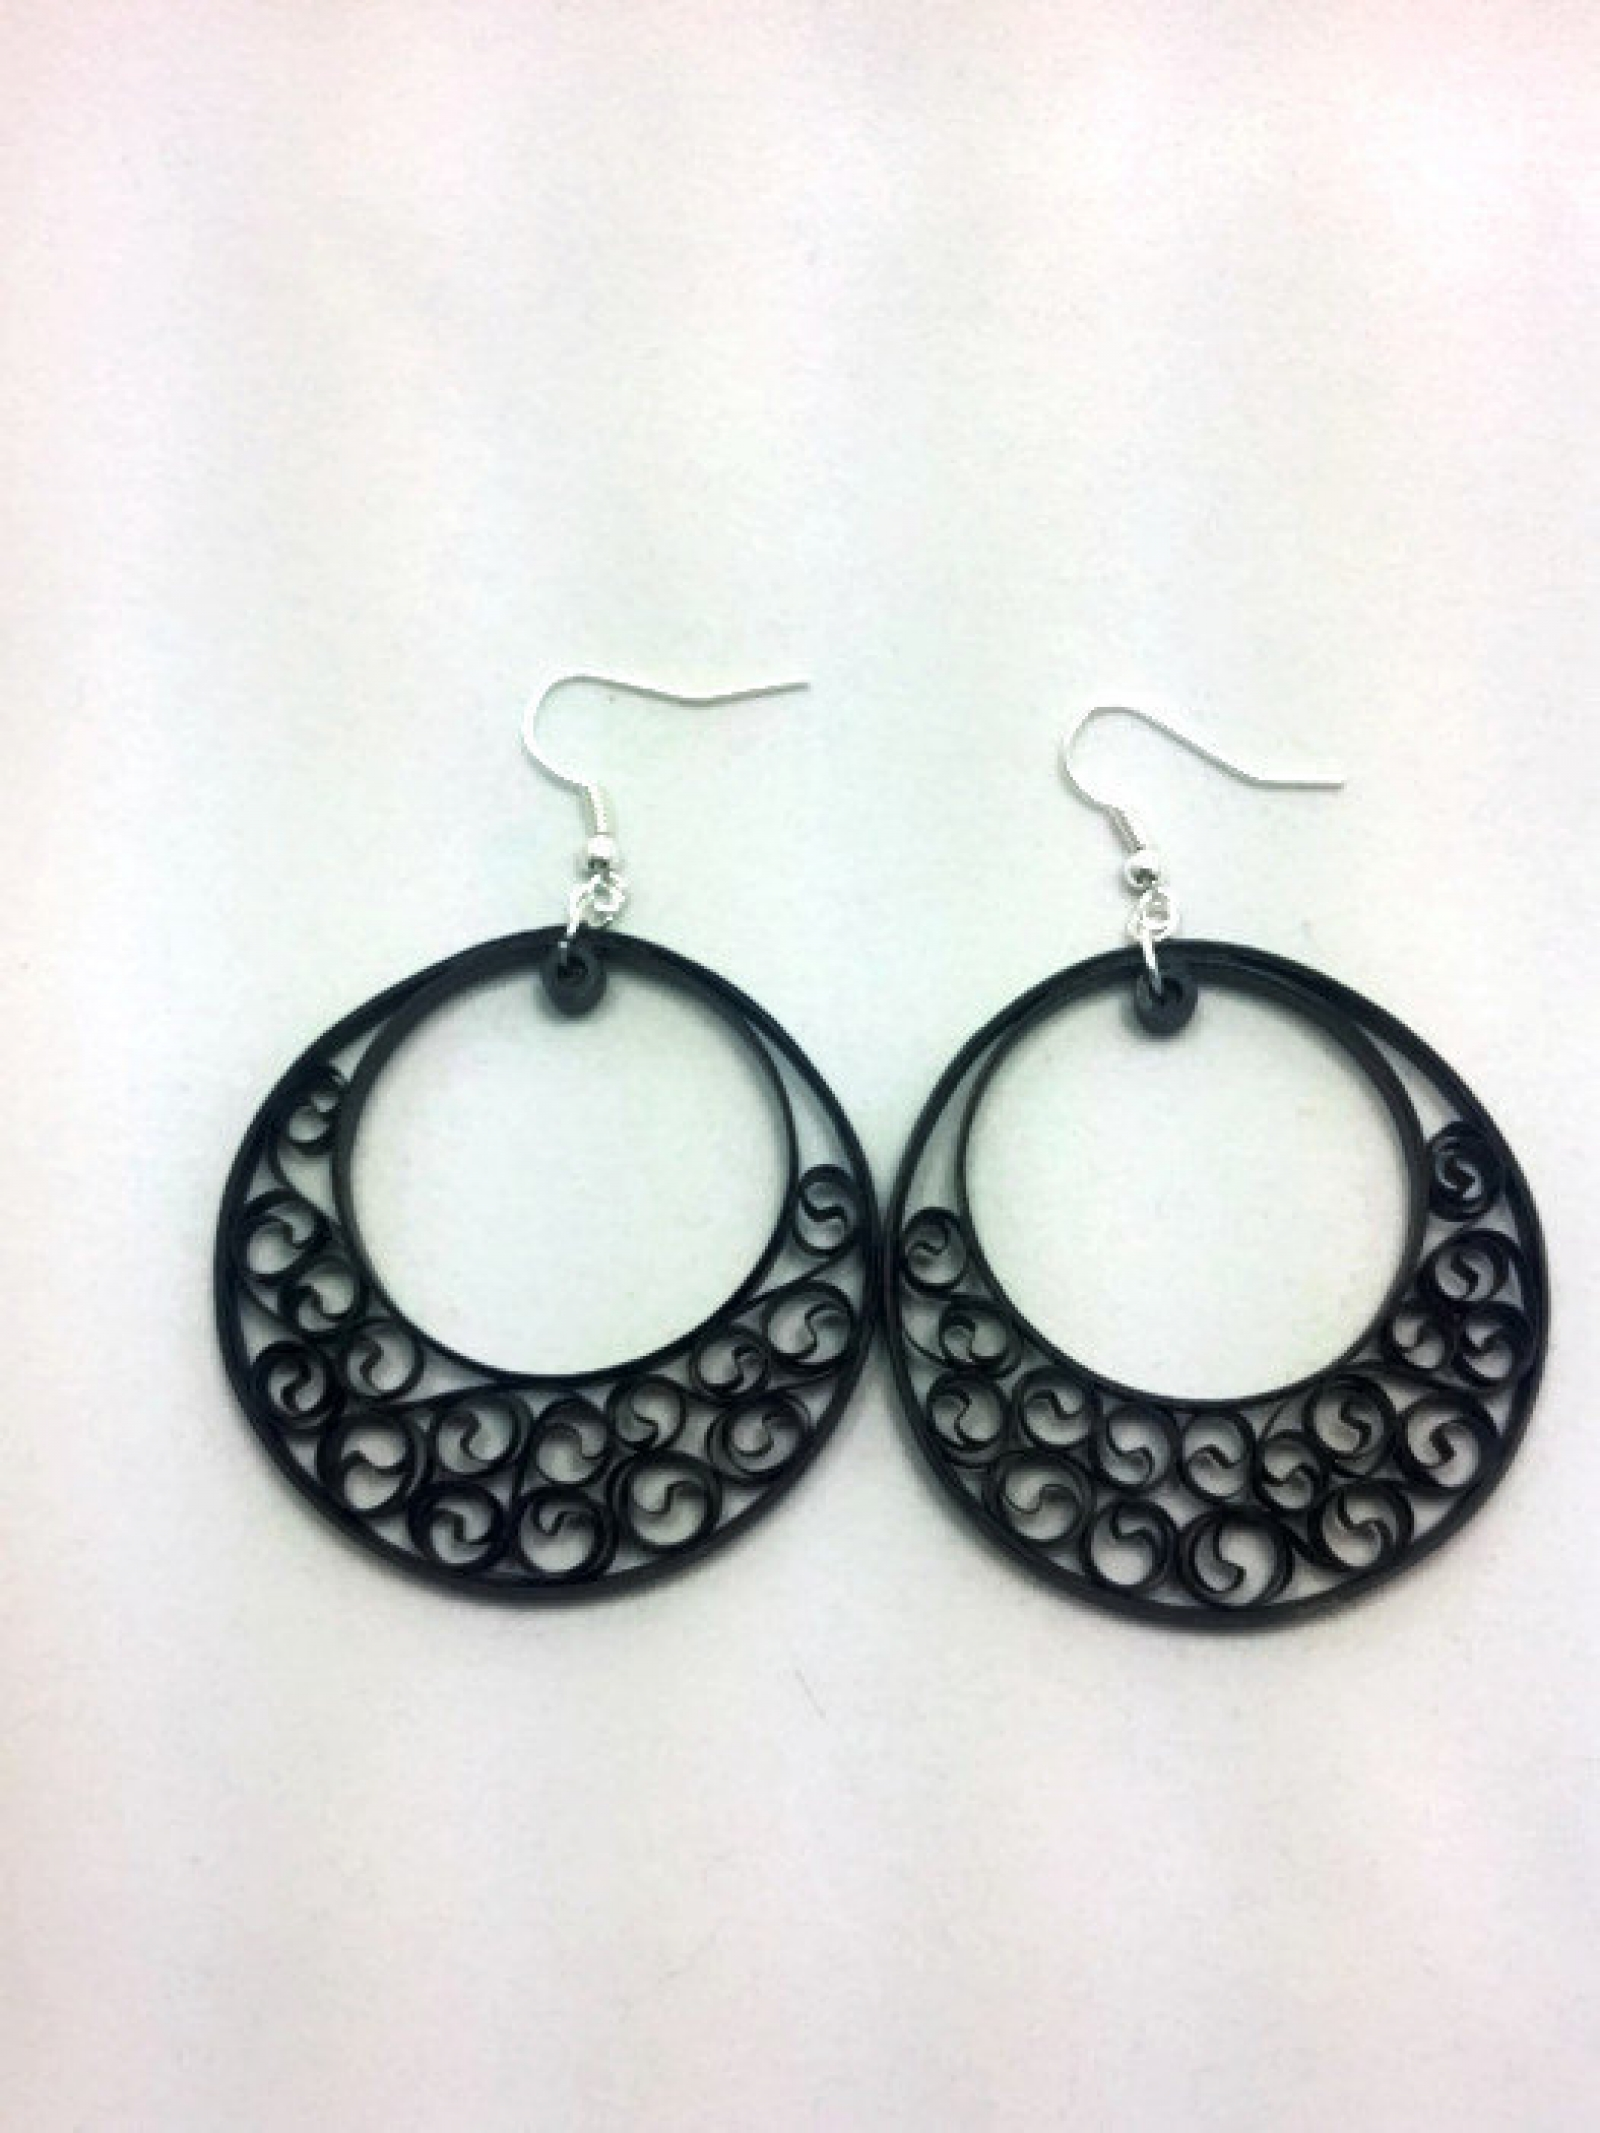 Black Filigree Earrings Half Moon Hoops Sweethearts And